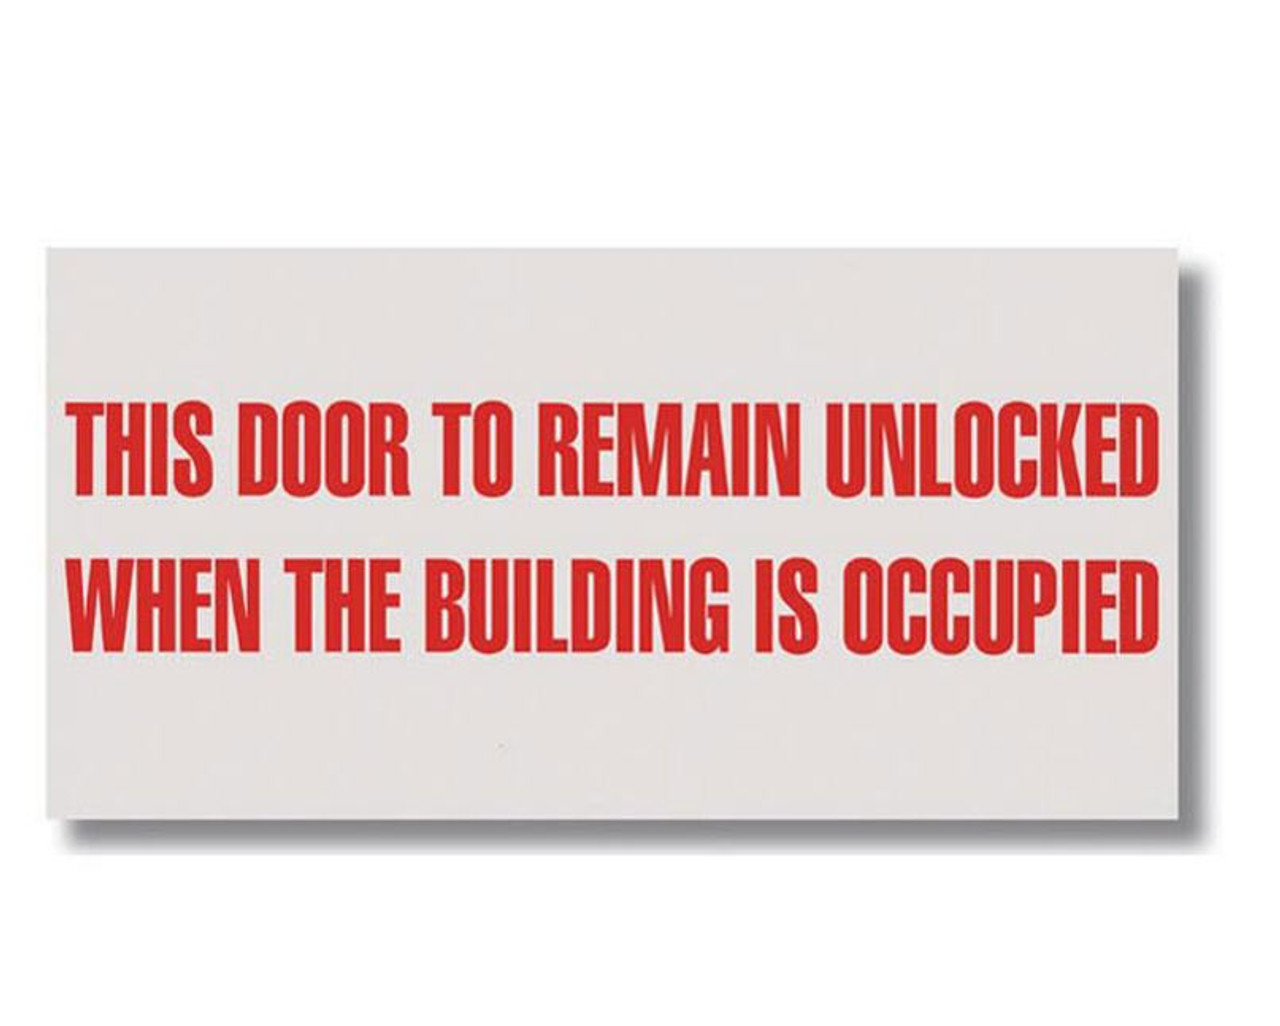 BL187 Self-adhesive Vinyl Door to Remain Unlocked Occupied